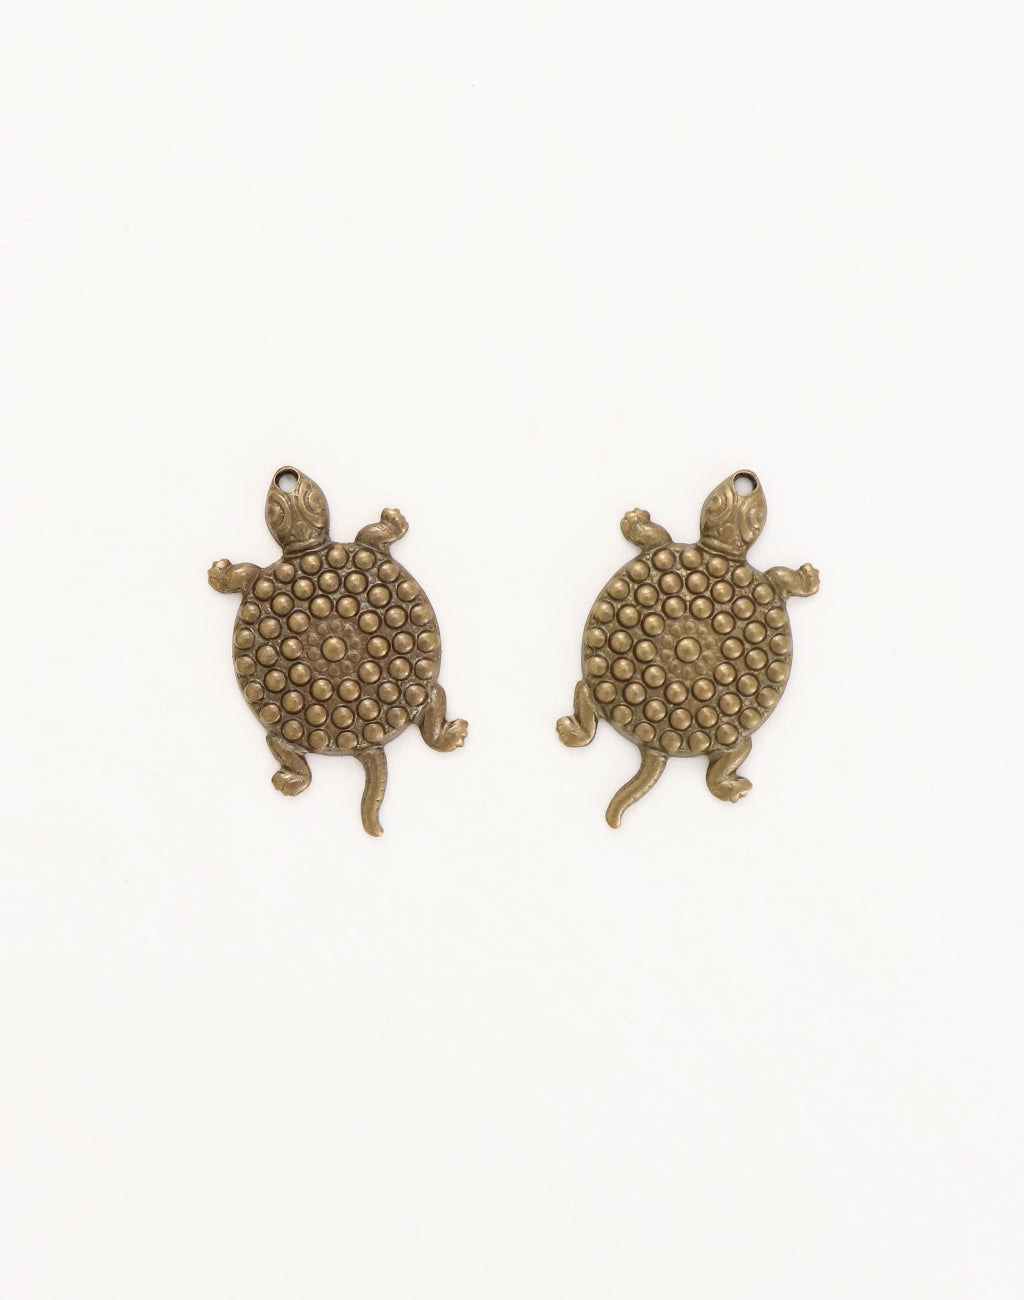 Santa Fe Turtle, 25x14mm, (2pcs)